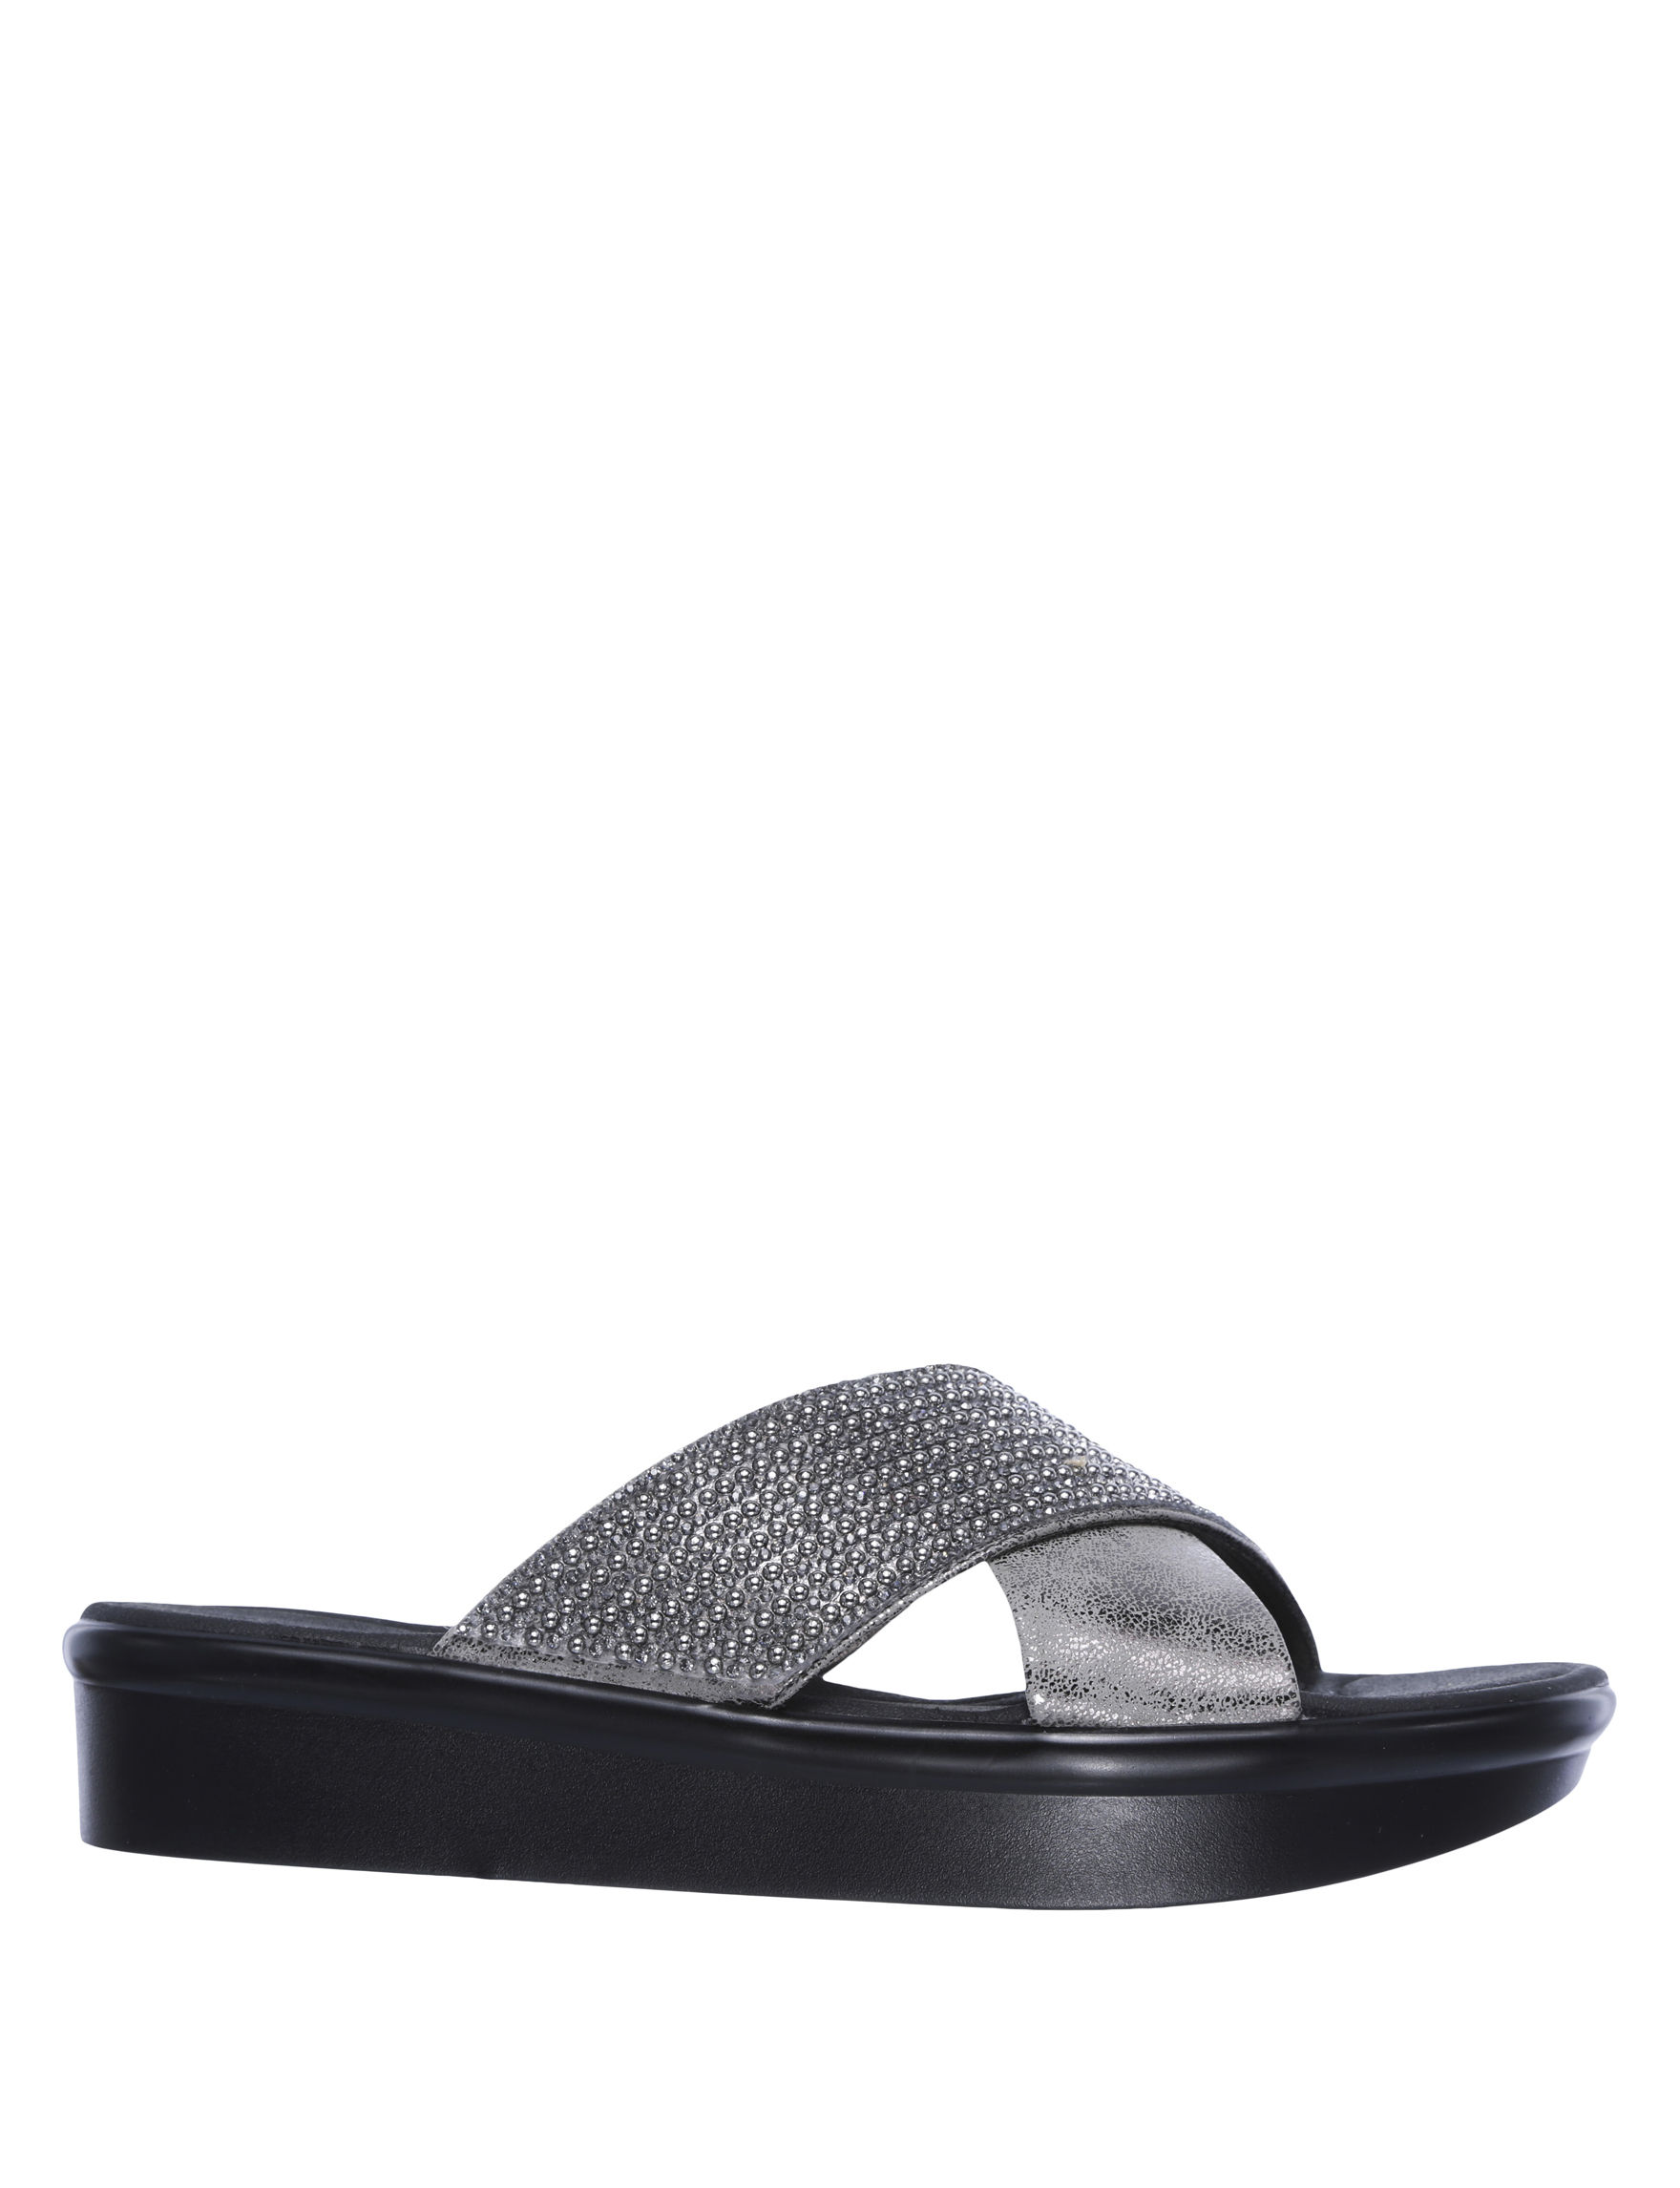 Skechers Pewter Wedge Sandals